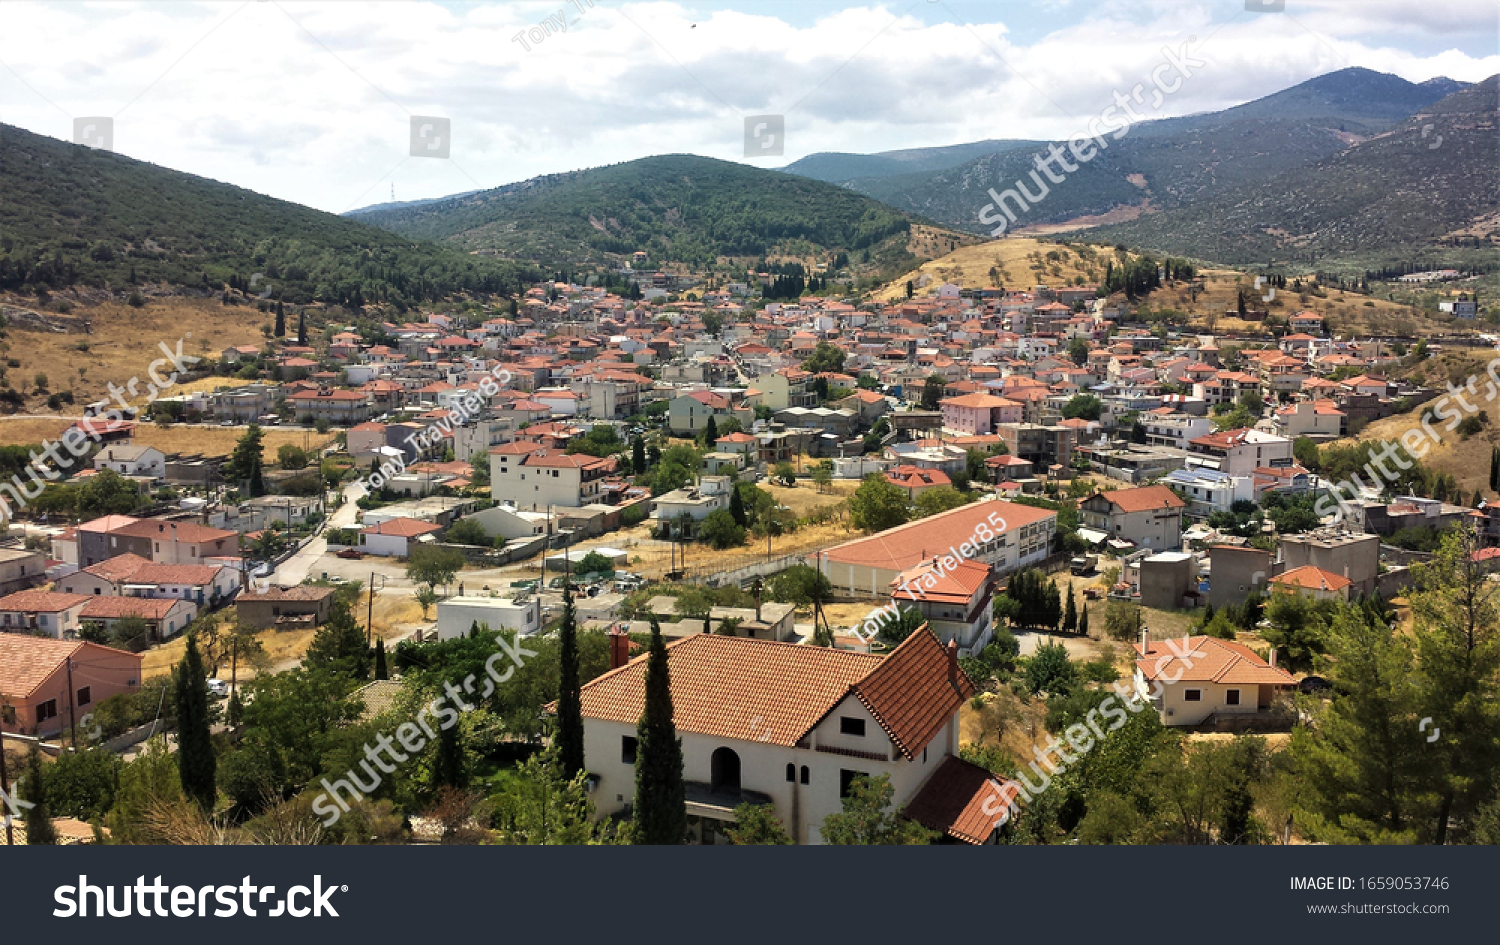 Panoramic view of Distomo in sunny summer day. Distomo is a semi-mountainous town in the southwestern part of Livadia province of Boeotia, Greece